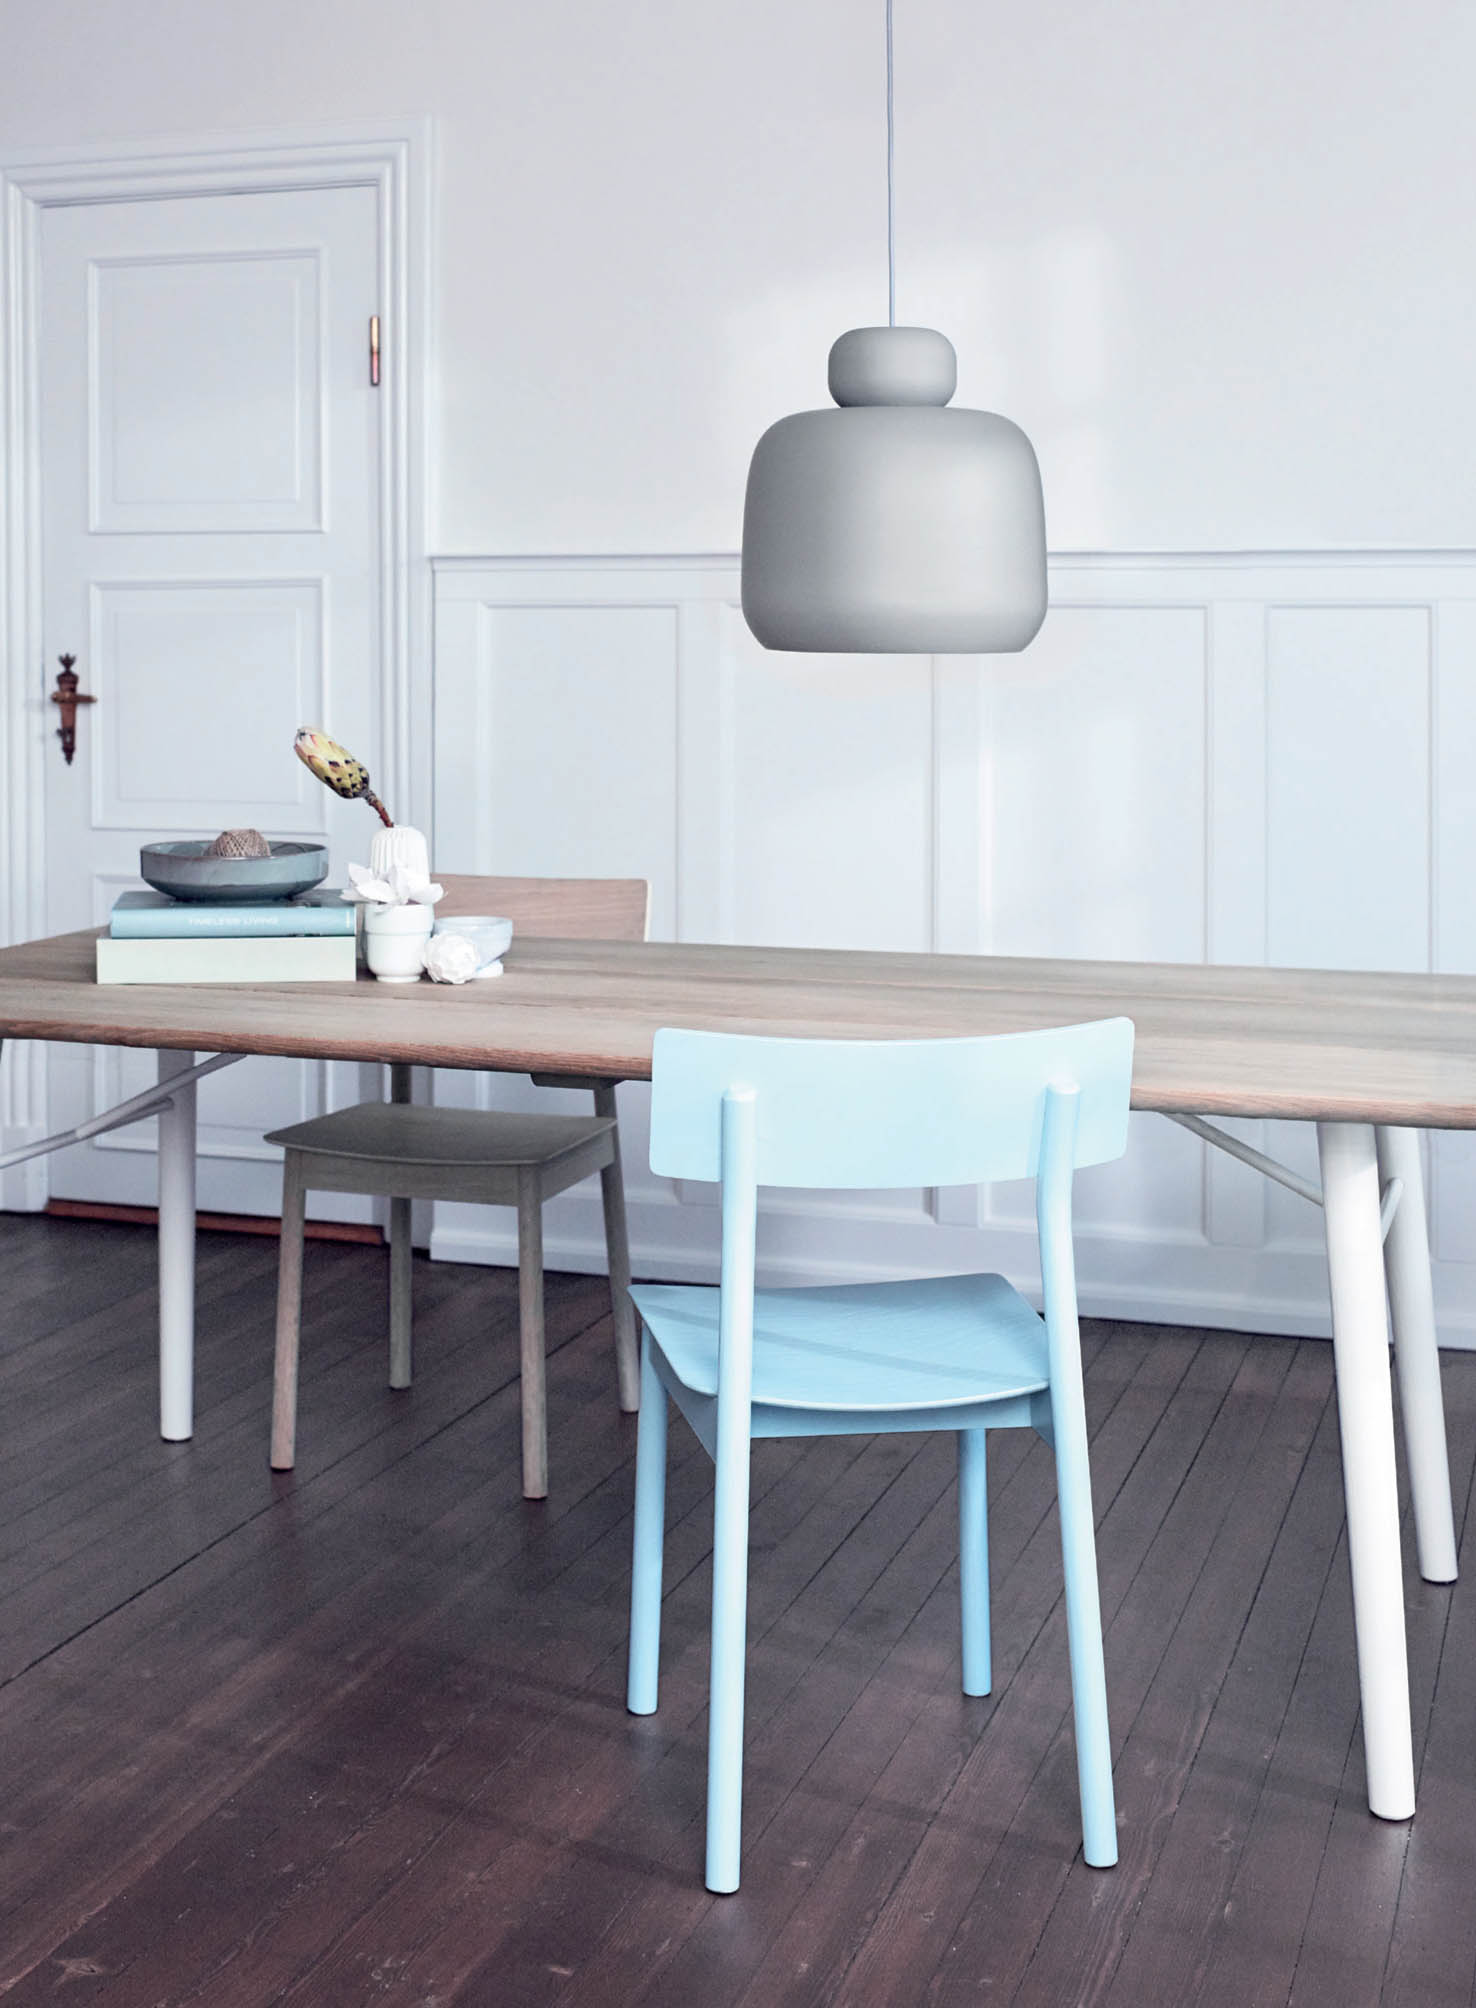 Stone Pendant, Split Dining Table and Pause Dining Chair by Woud.